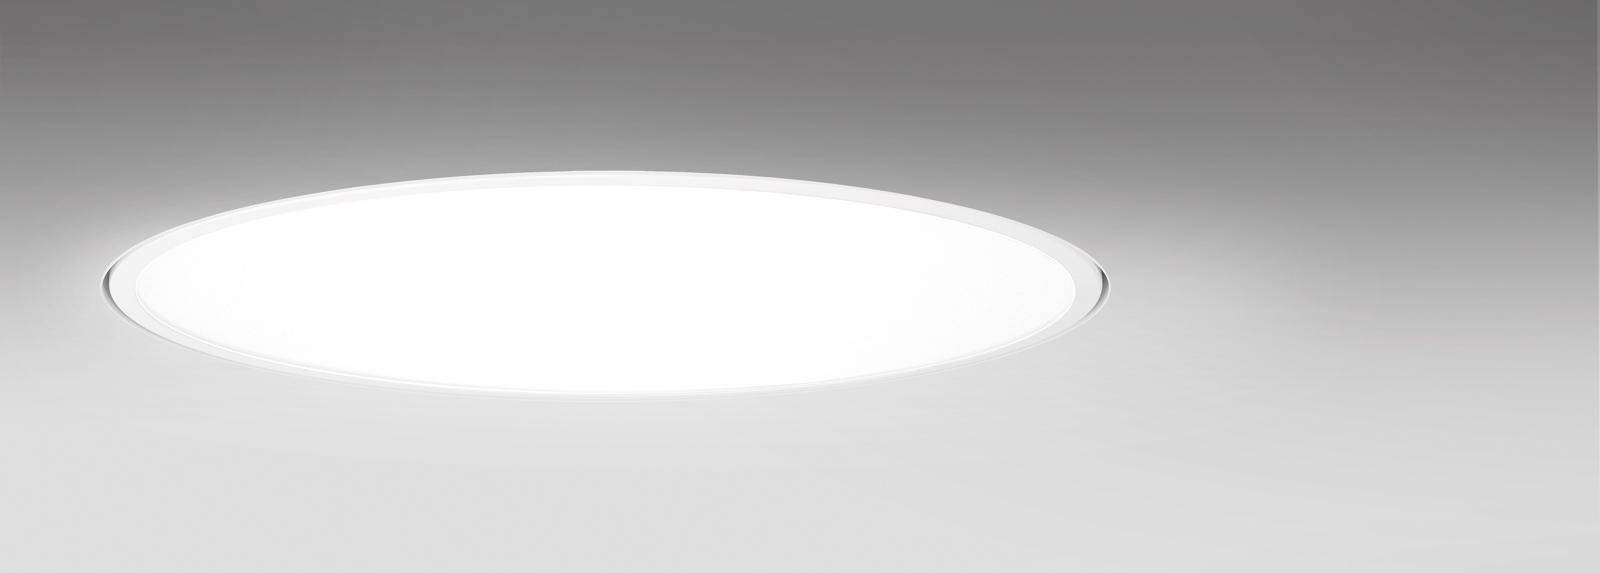 Commerical Downlights